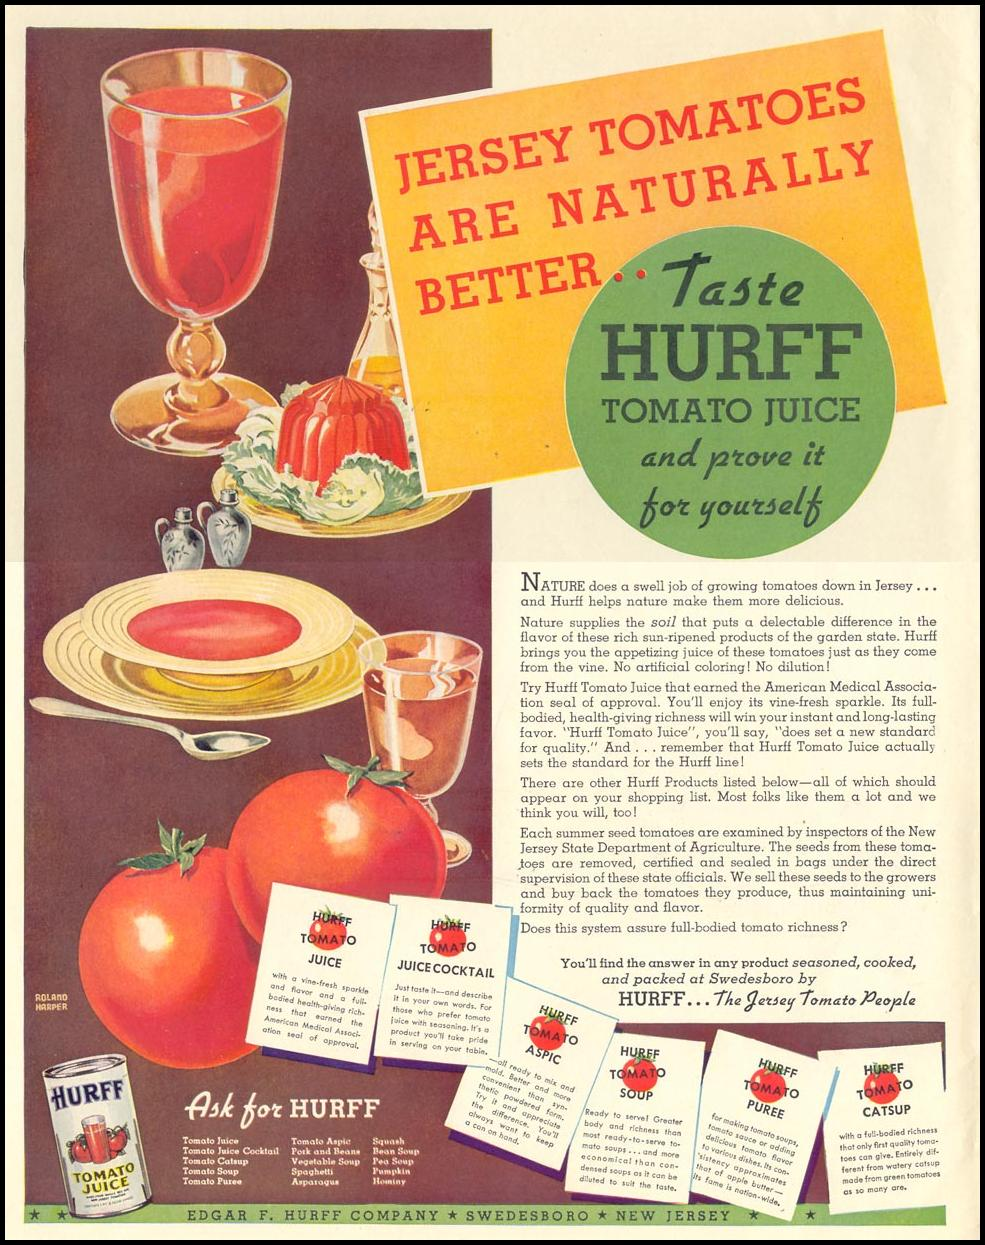 HURFF TOMATO PRODUCTS LIFE 08/09/1937 INSIDE FRONT